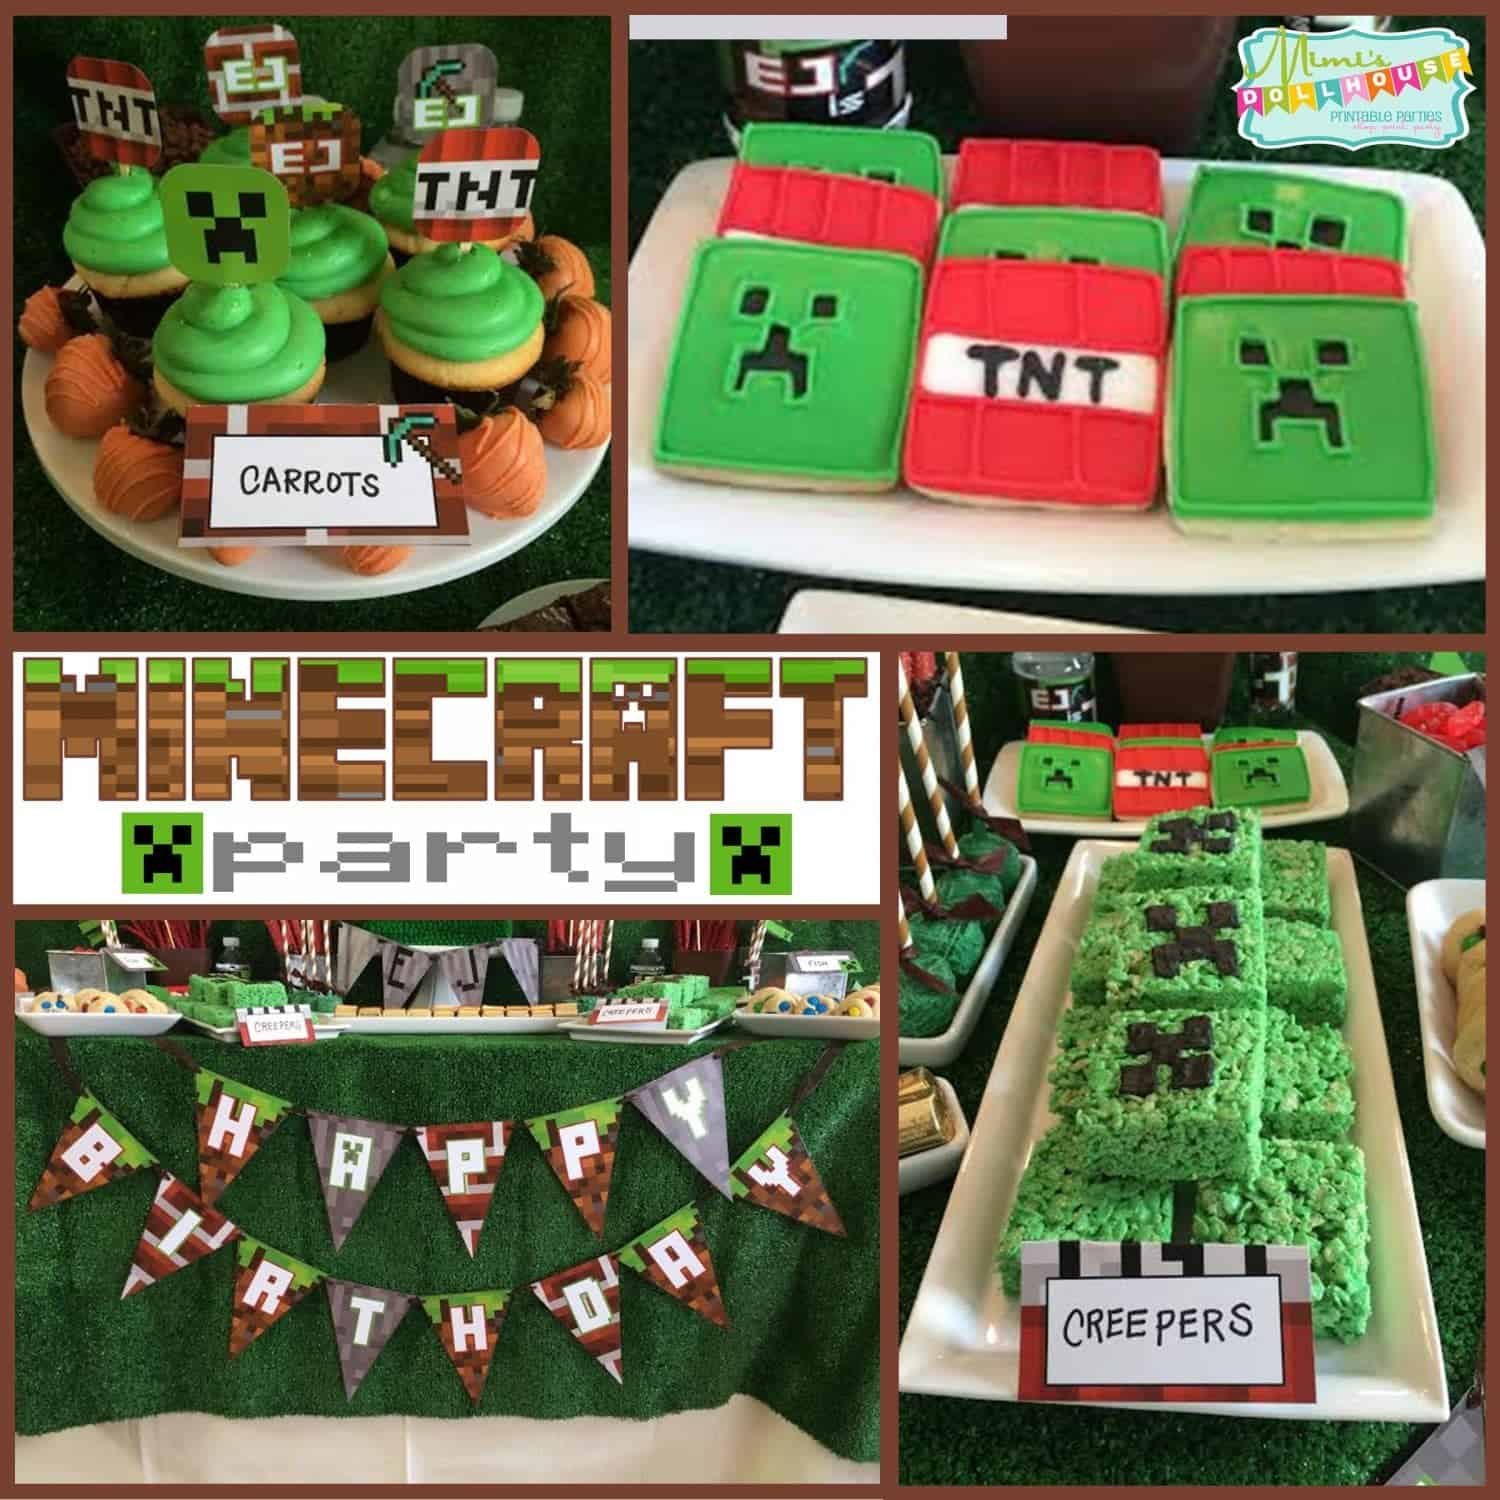 Minecraft Party: Let's build a birthday!